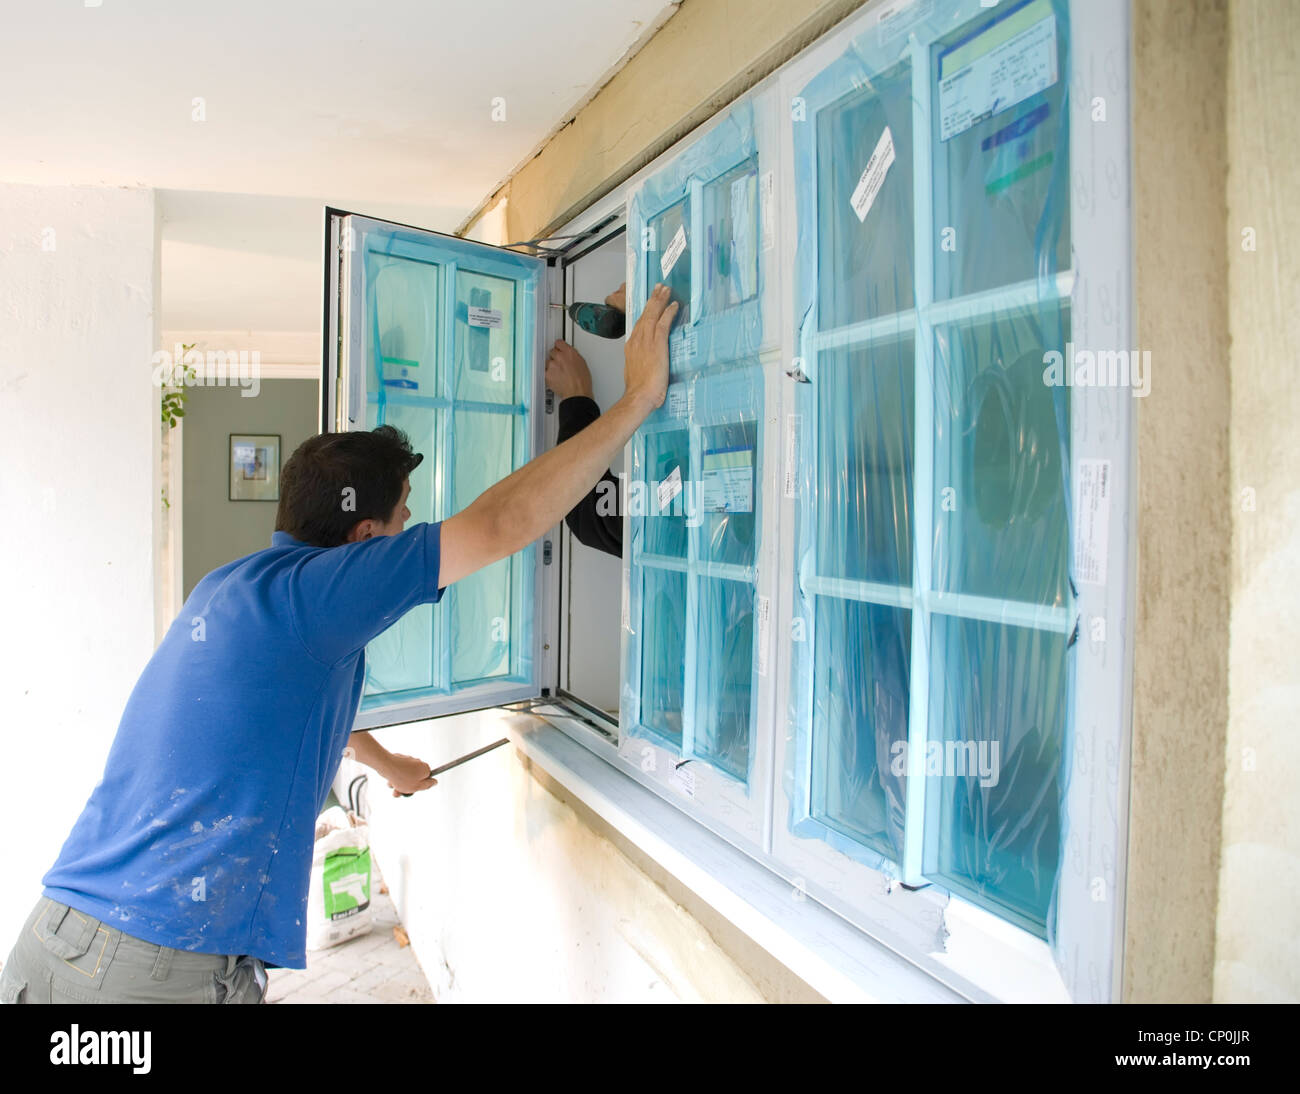 Installing Windows Stockfotos & Installing Windows Bilder - Alamy